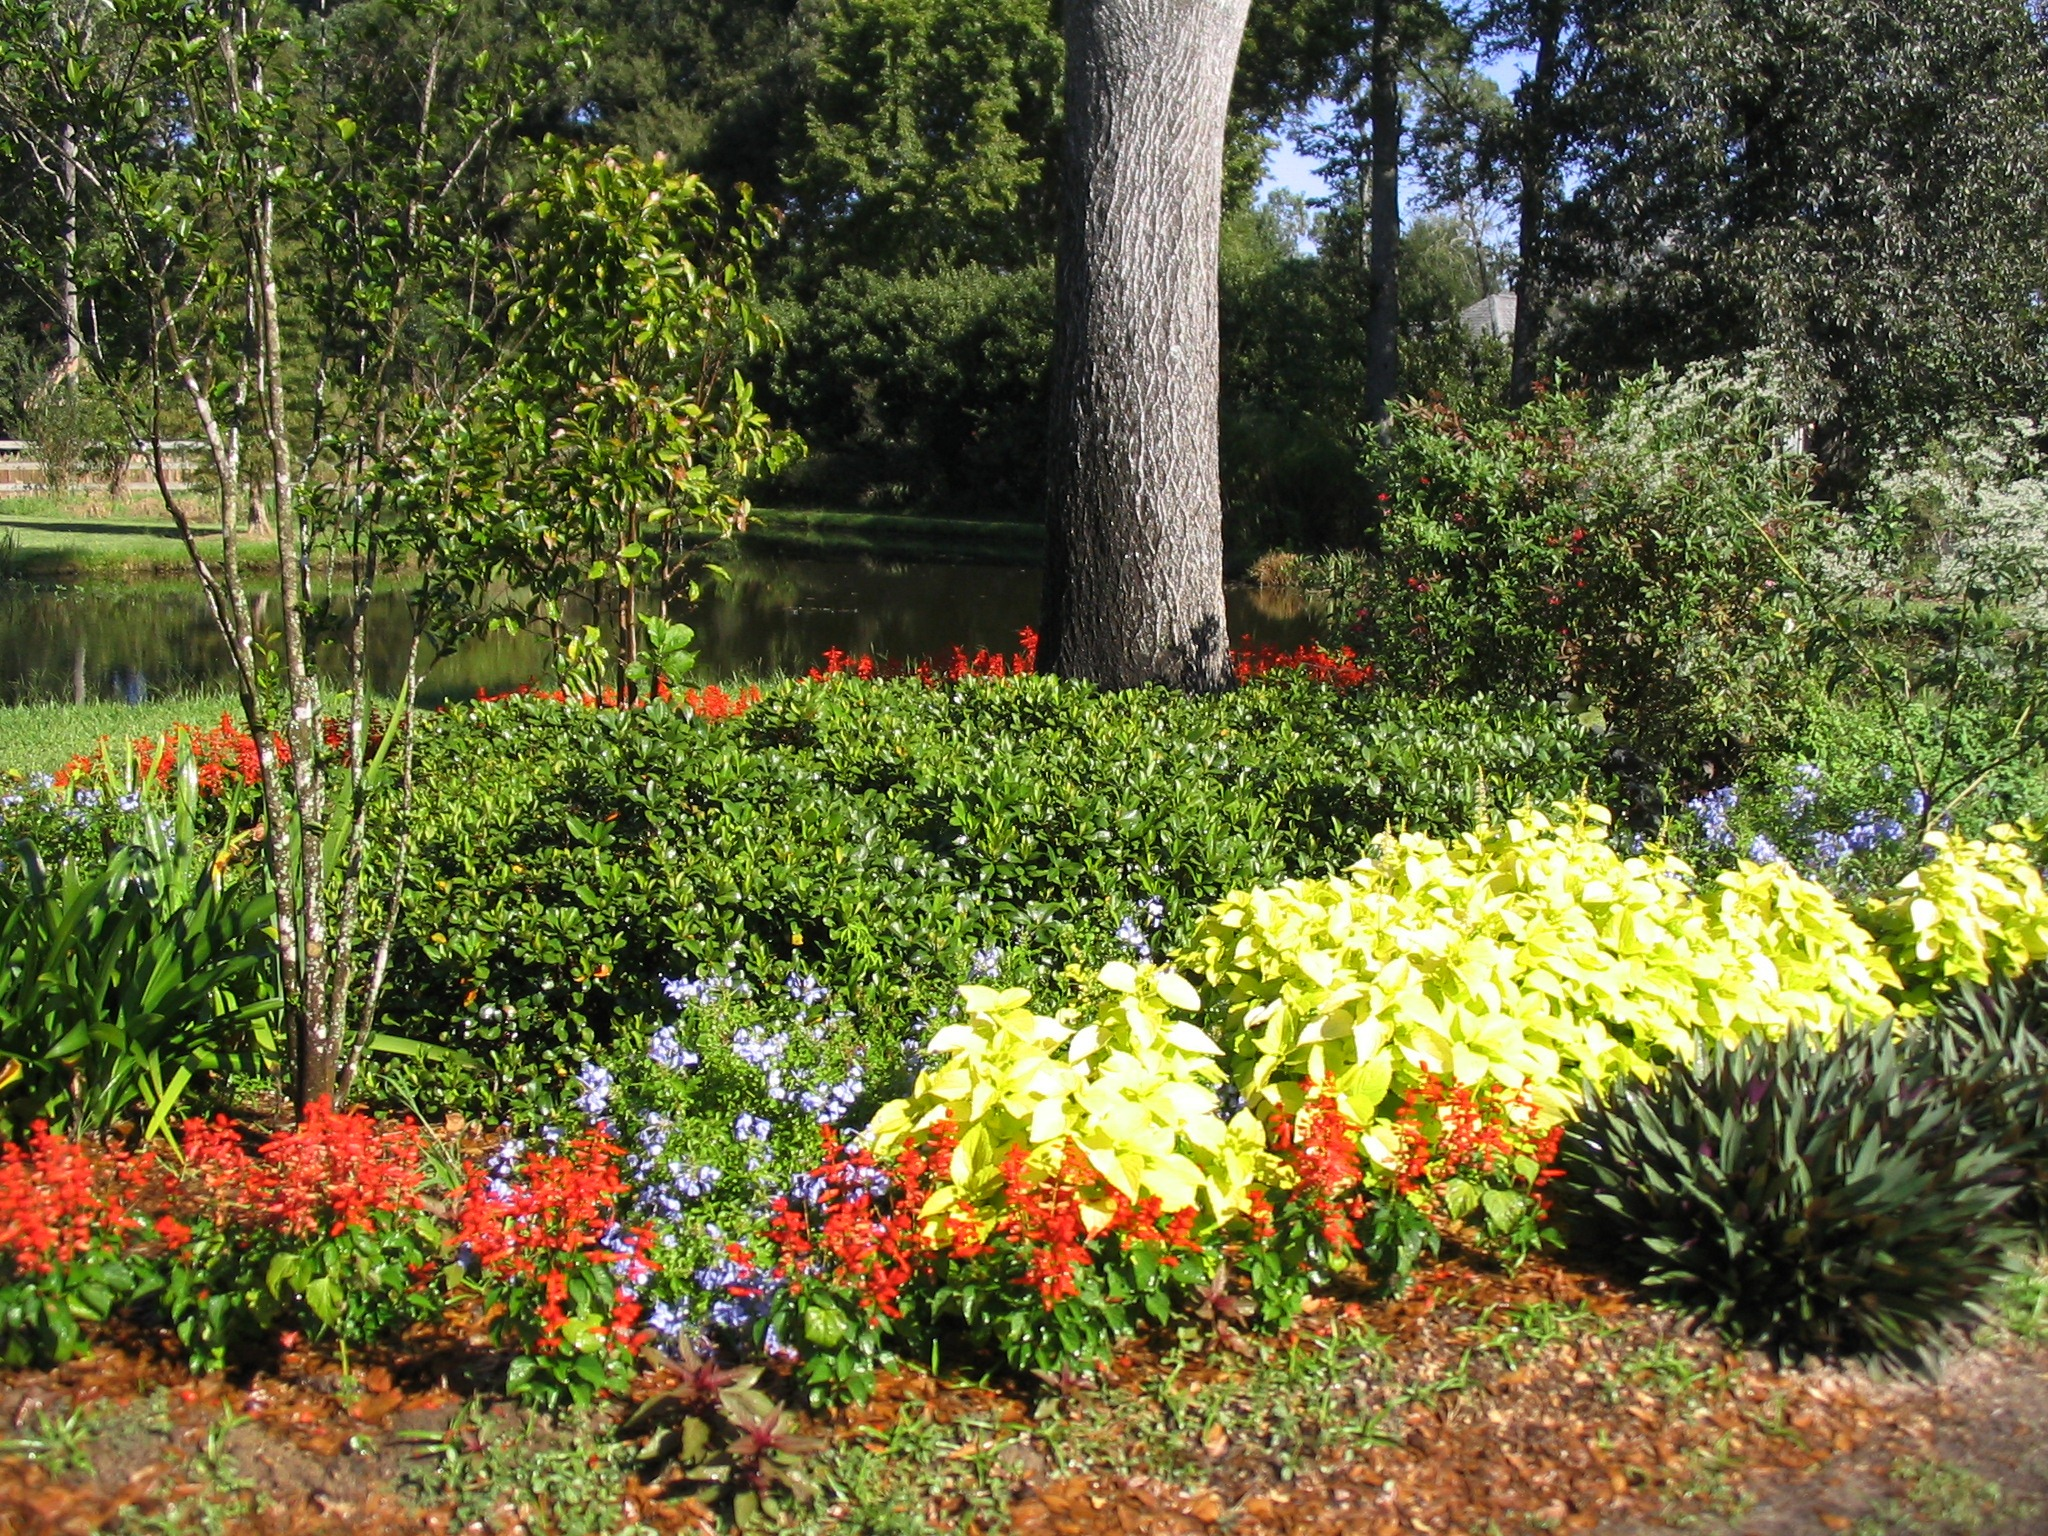 summer flowers add color.jpg thumbnail